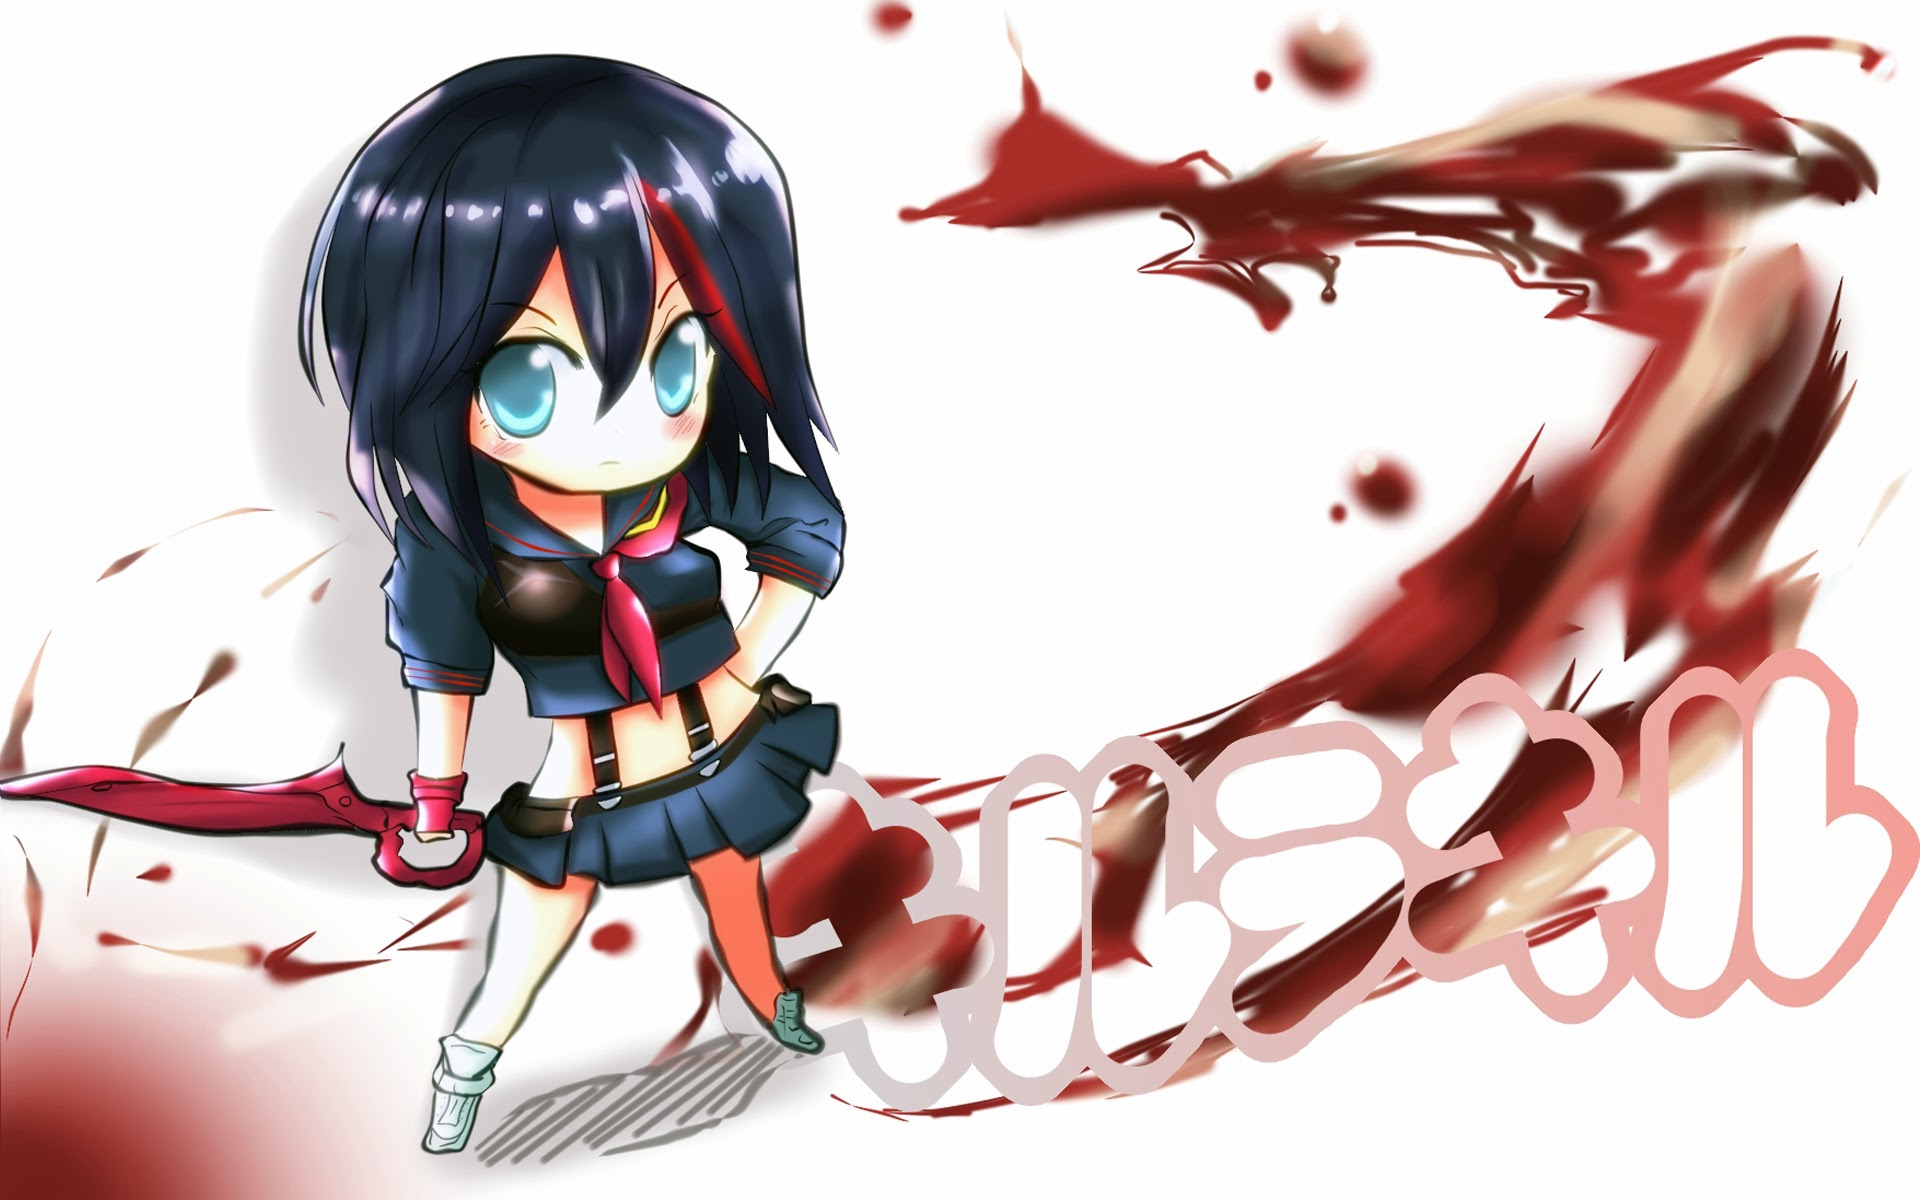 Anime chibi wallpaper wallpapersafari - Wallpaper computer anime ...